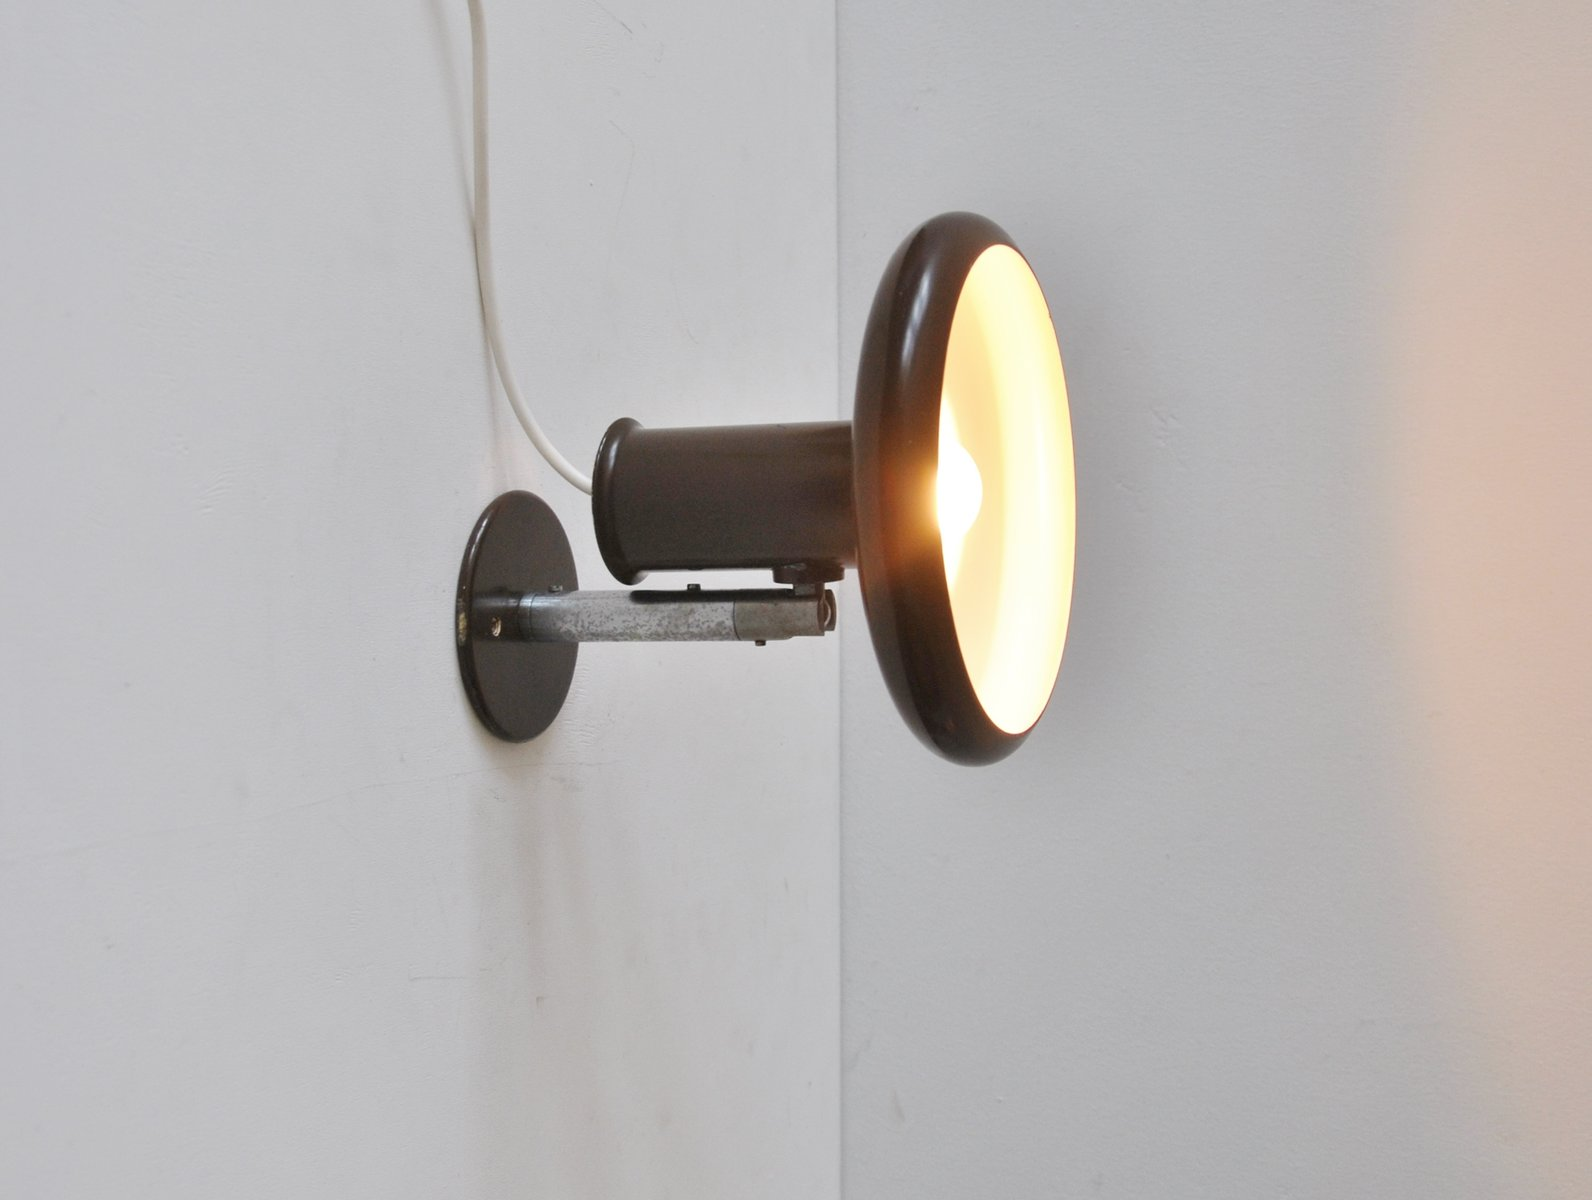 Optima Wall and Hanging Lamp by Hans Due for Fog & M?rup, Set of 2 for sale at Pamono